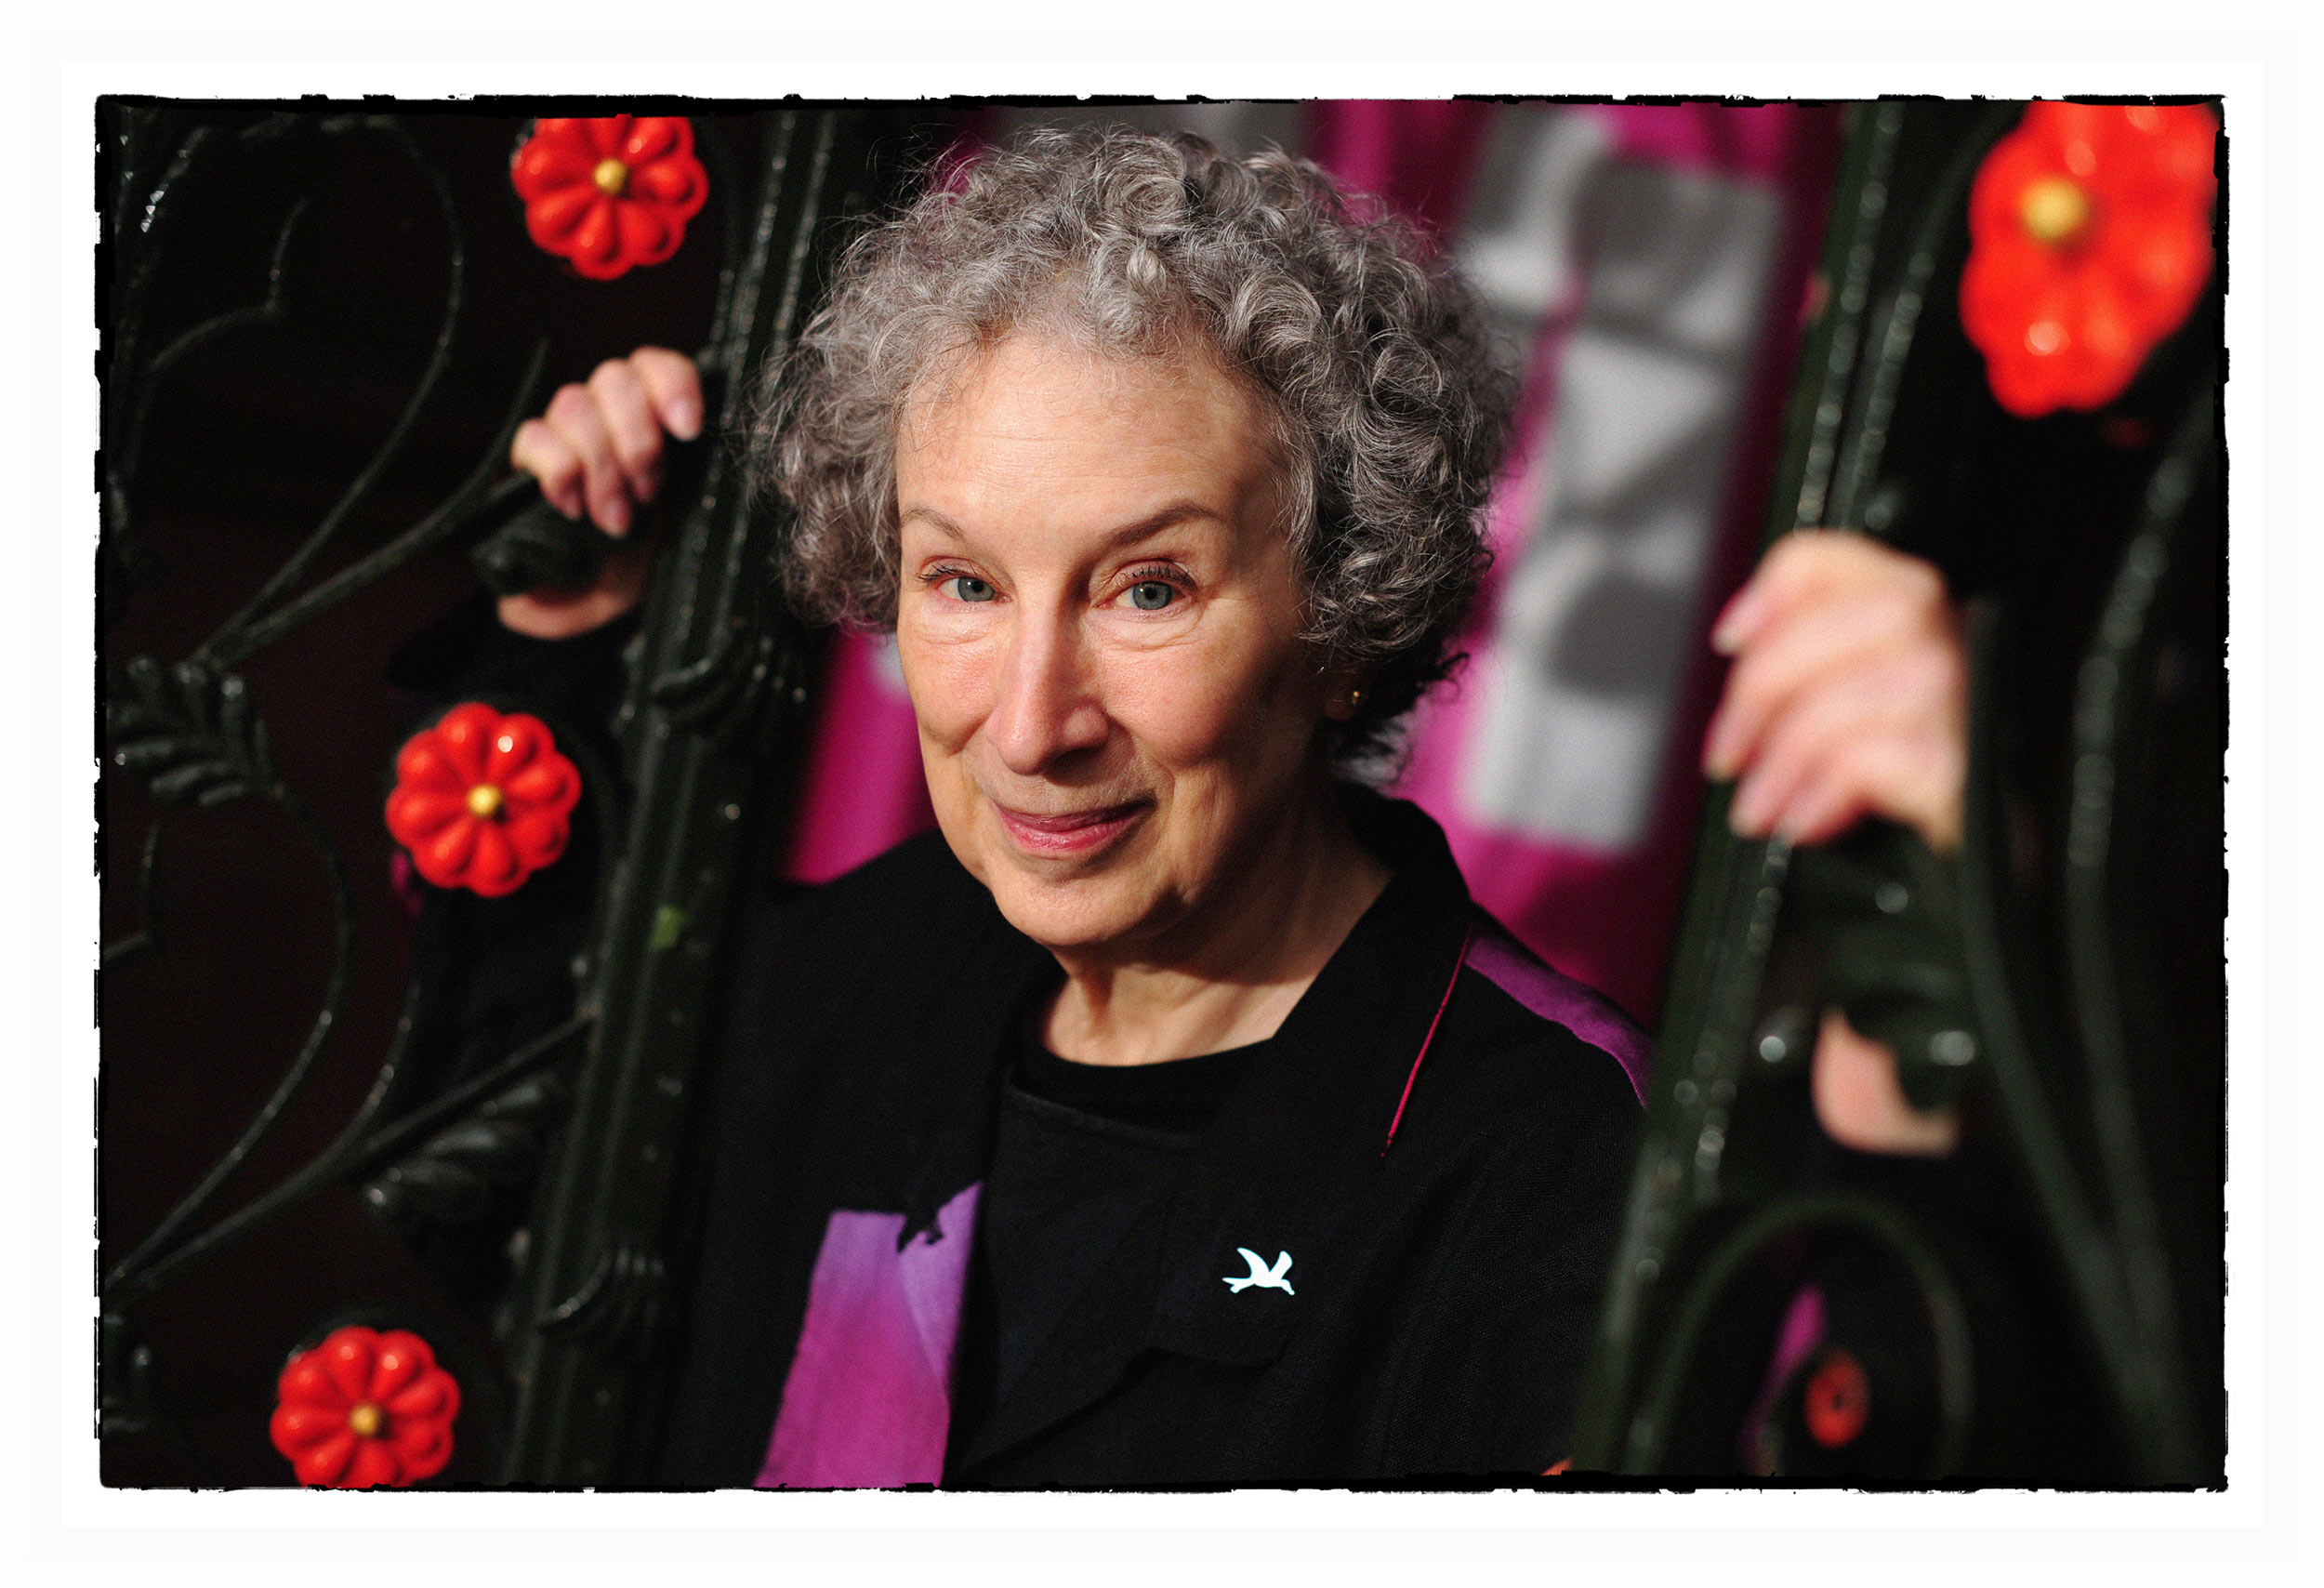 Photograph of Canadian writer of Handmaids Tale Margaret Atwood at Manchester Literary Festival photography by Manchester Photographer